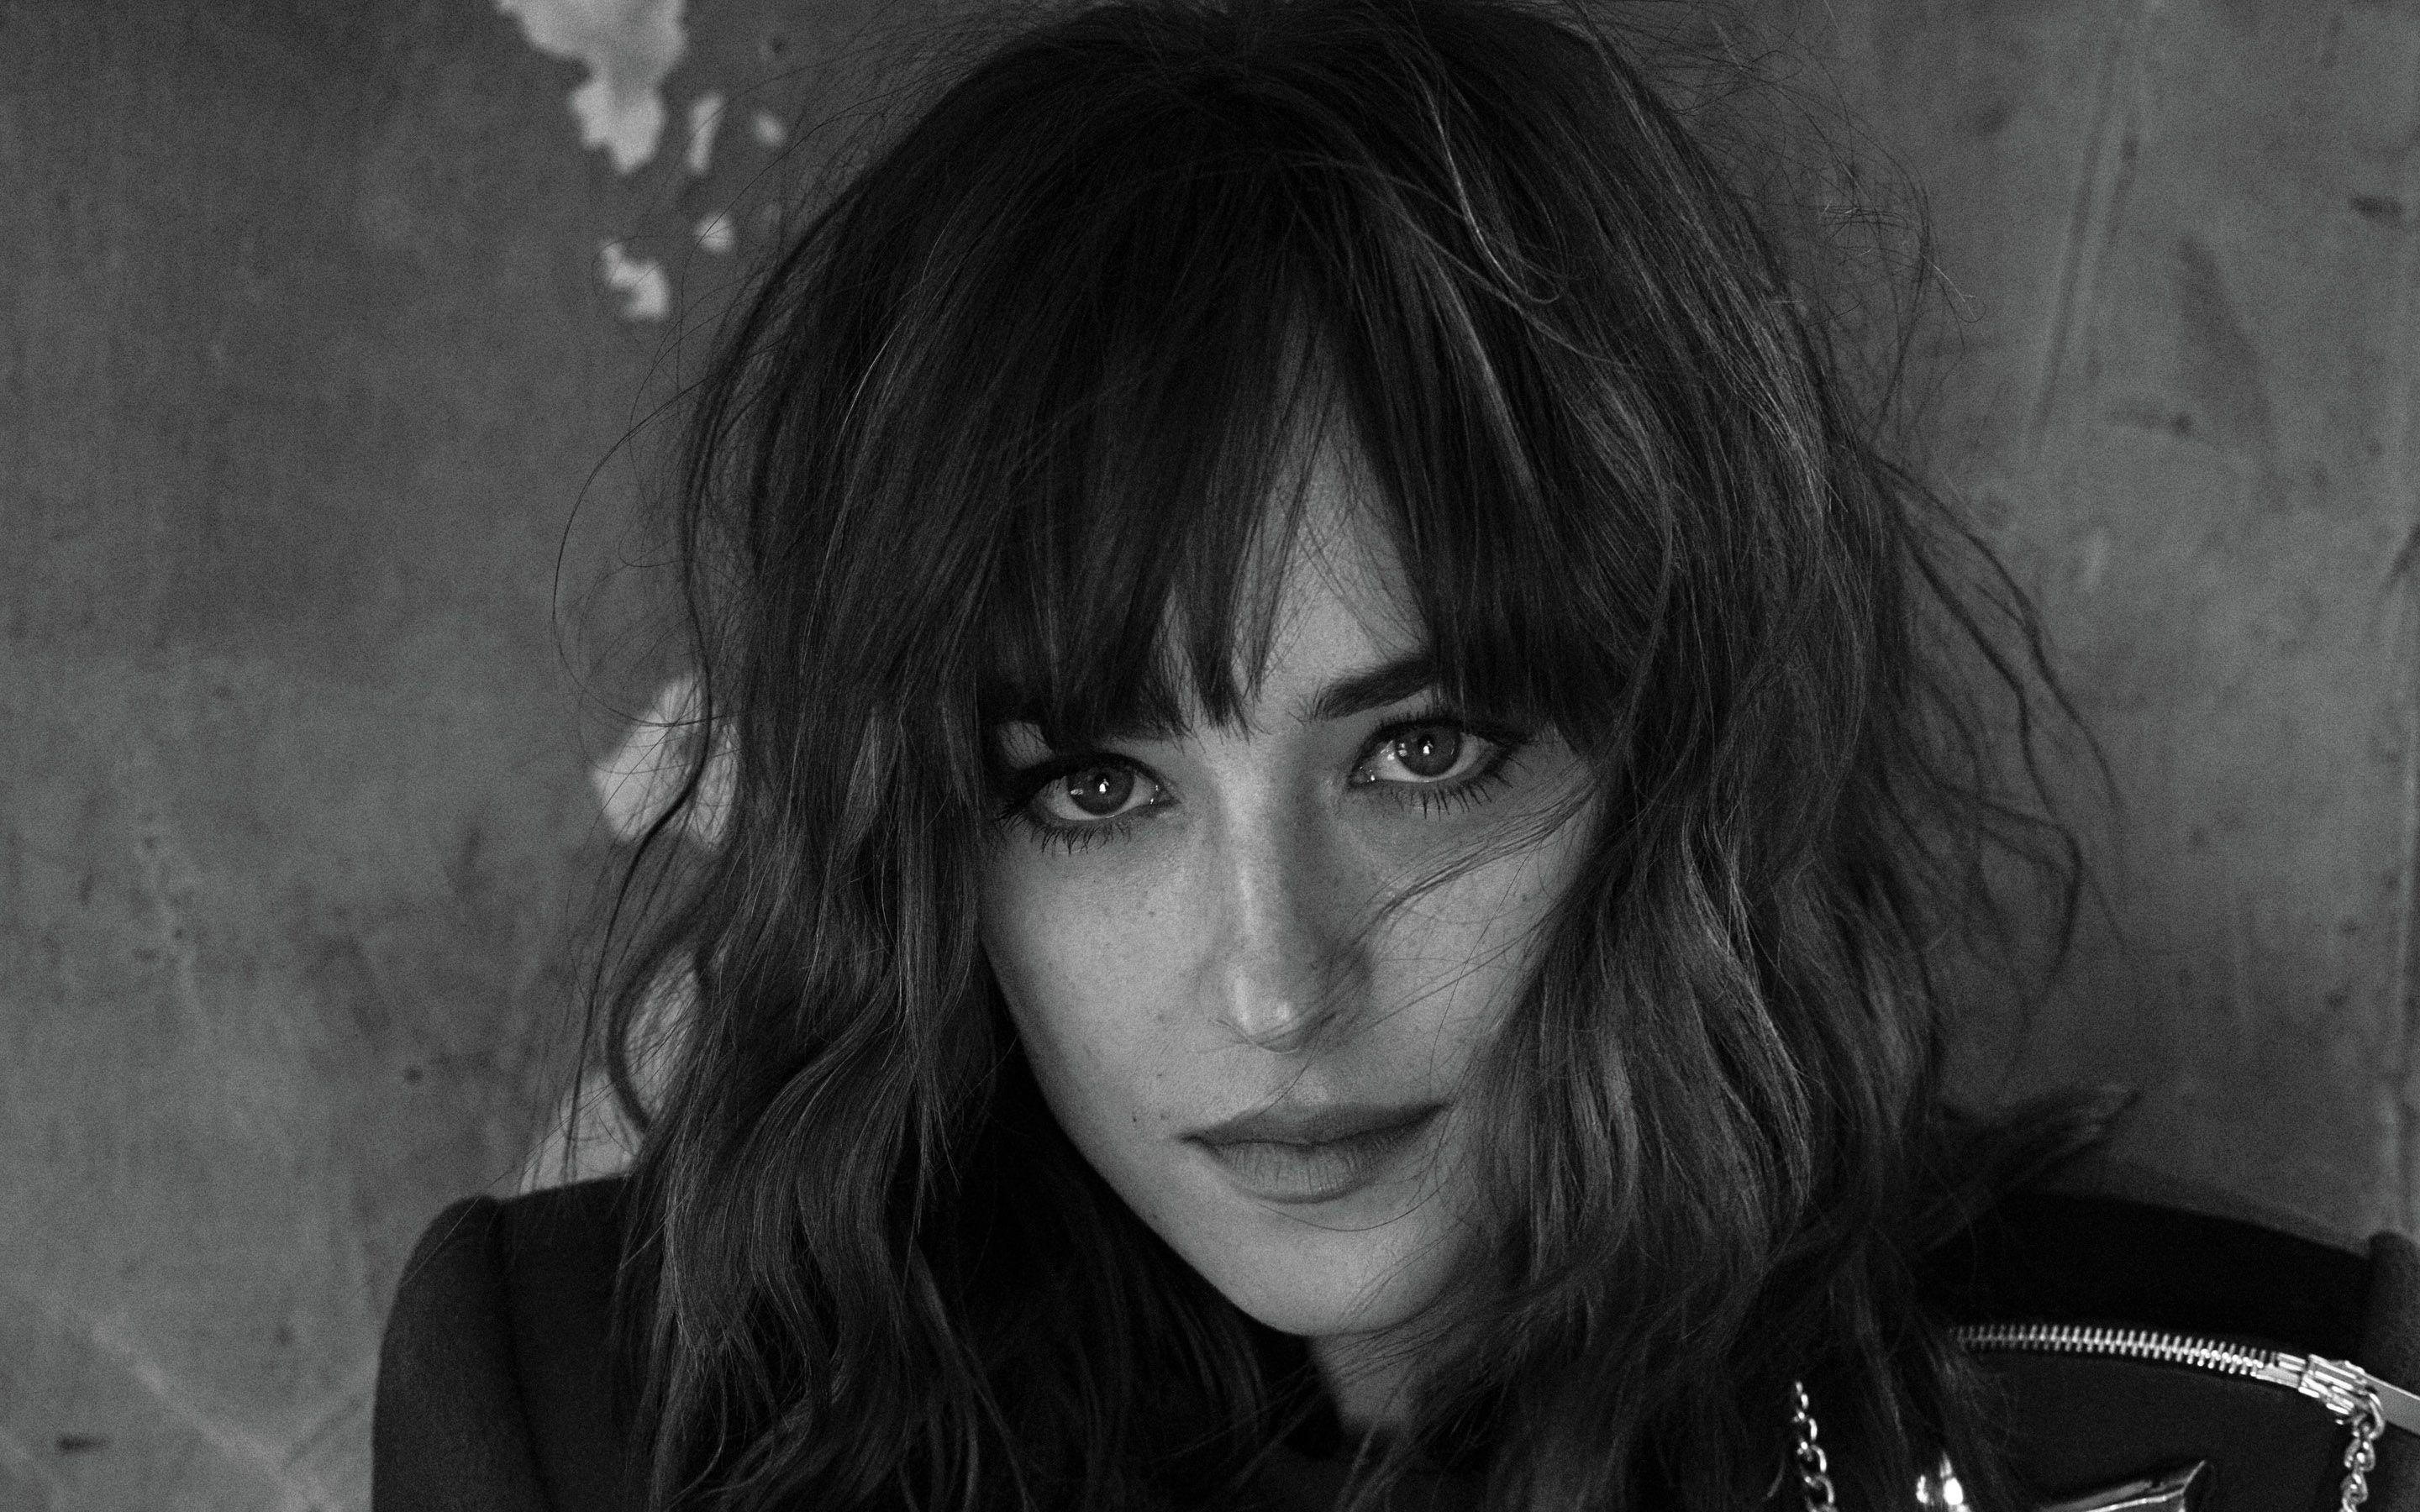 Dakota Mayi Johnson Austin Texas 4 oktober 1989 is een Amerikaans actrice en fotomodel Biografie Dakota Johnson werd geboren in Austin Texas als dochter van